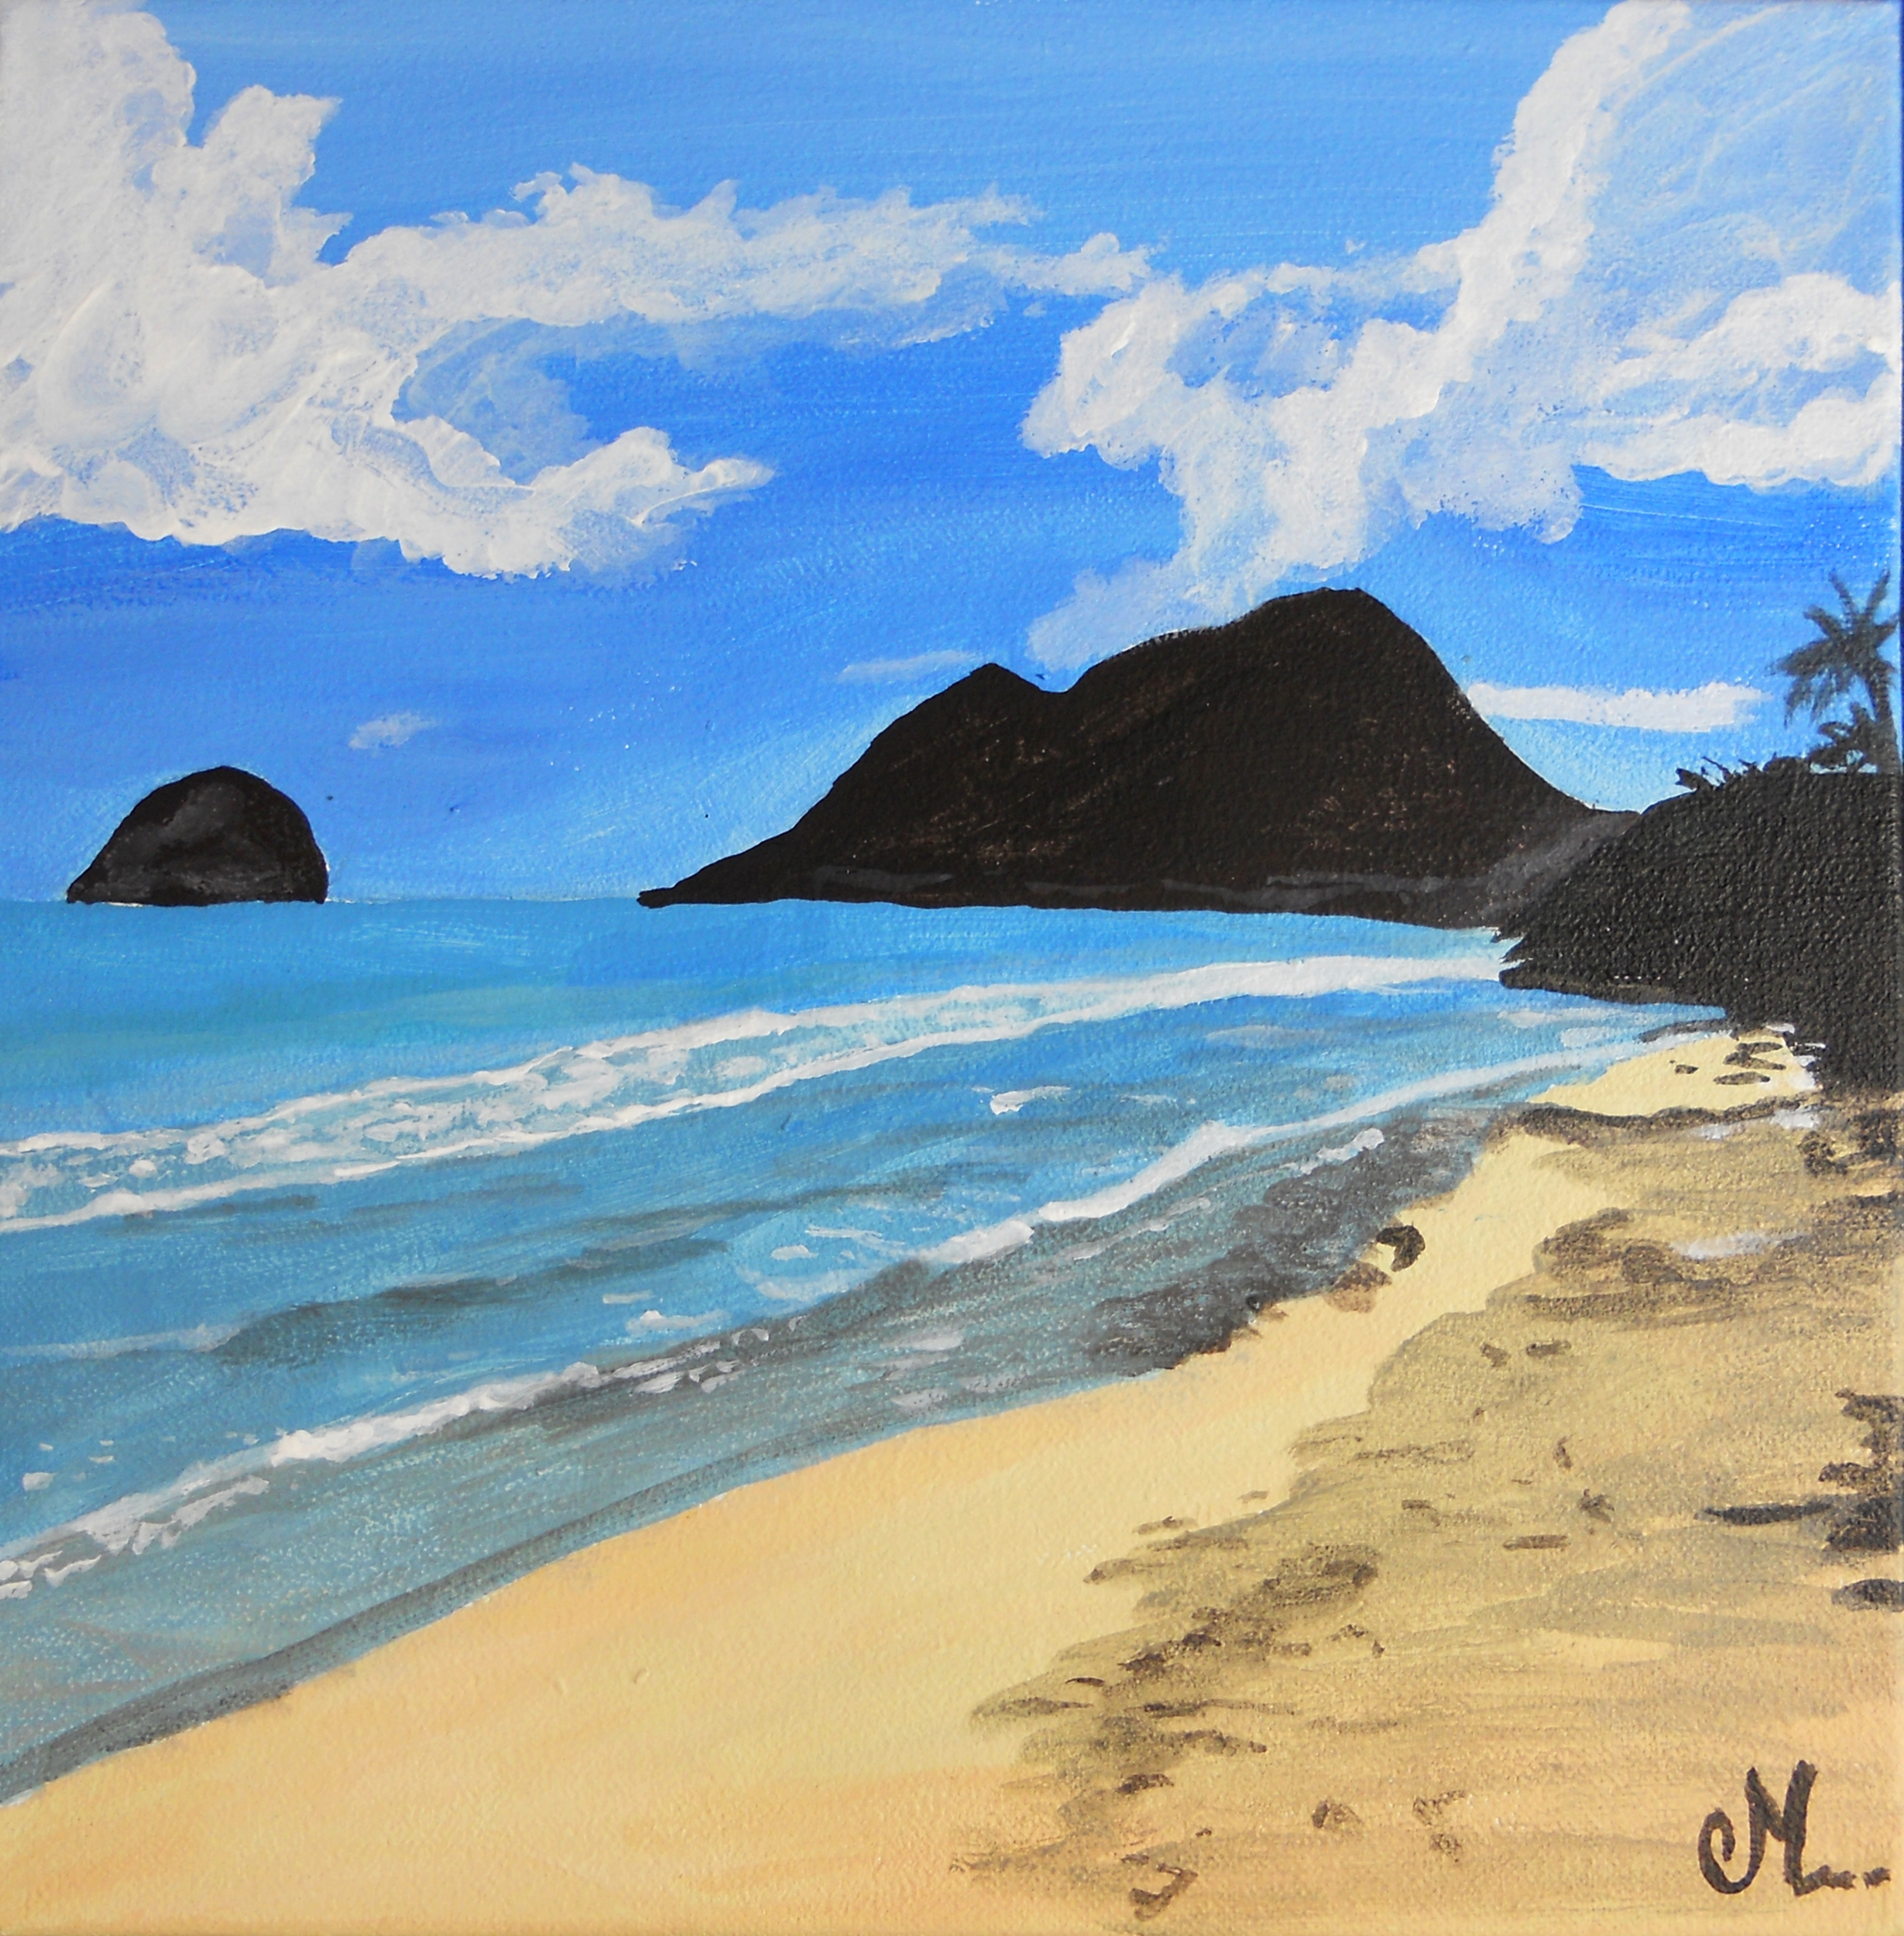 tableau art nature plage mer martinique diamant